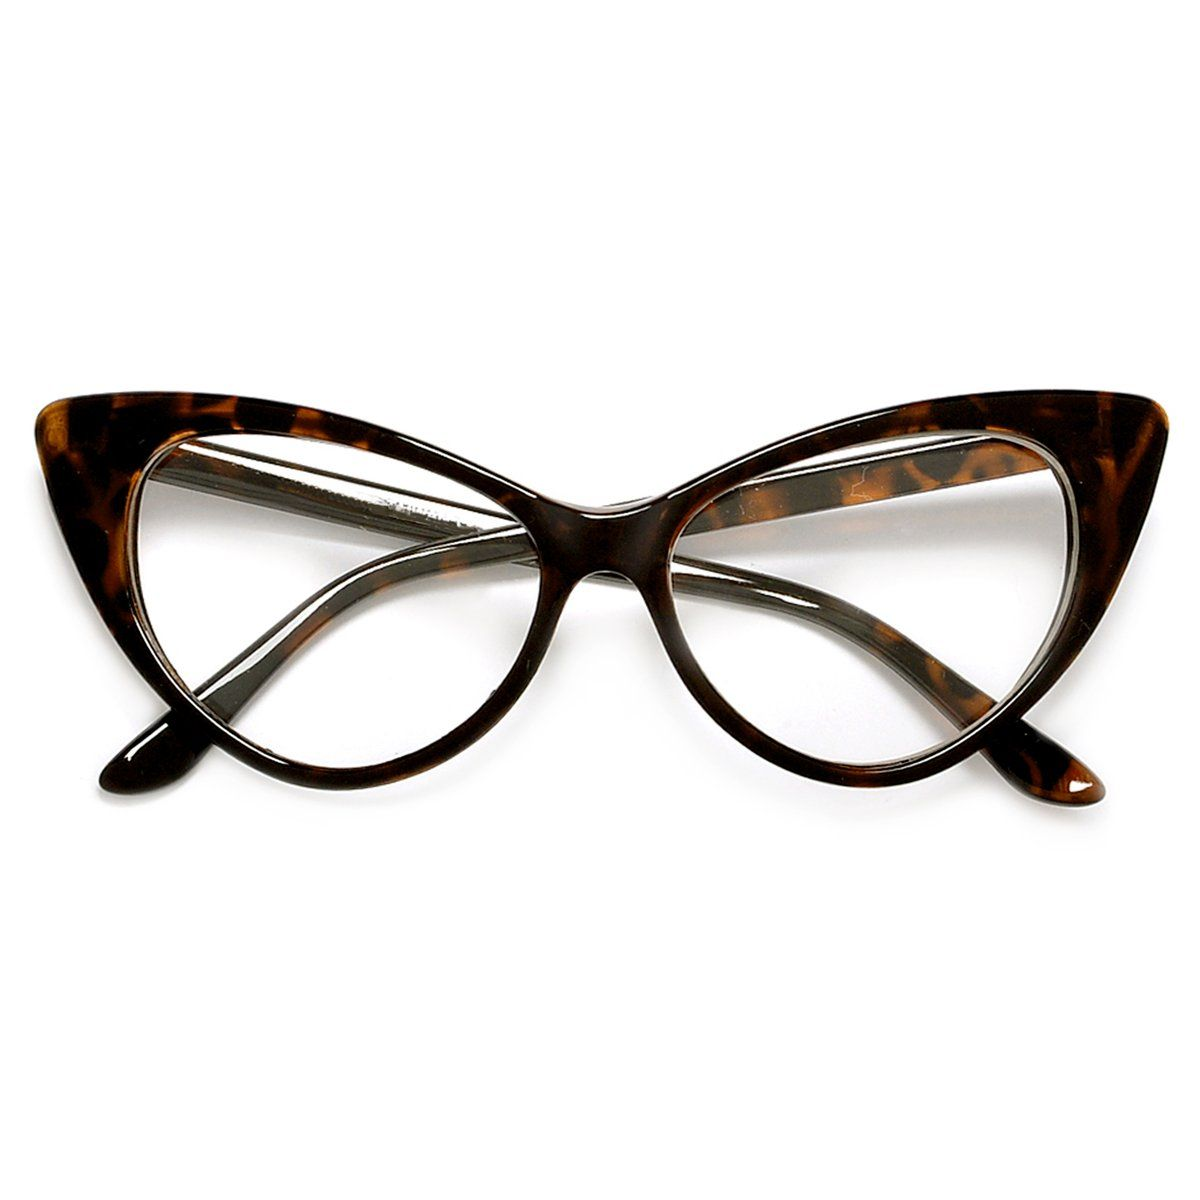 Retro Fashion Mod Chic High Pointed Cat Eye Sunglasses New